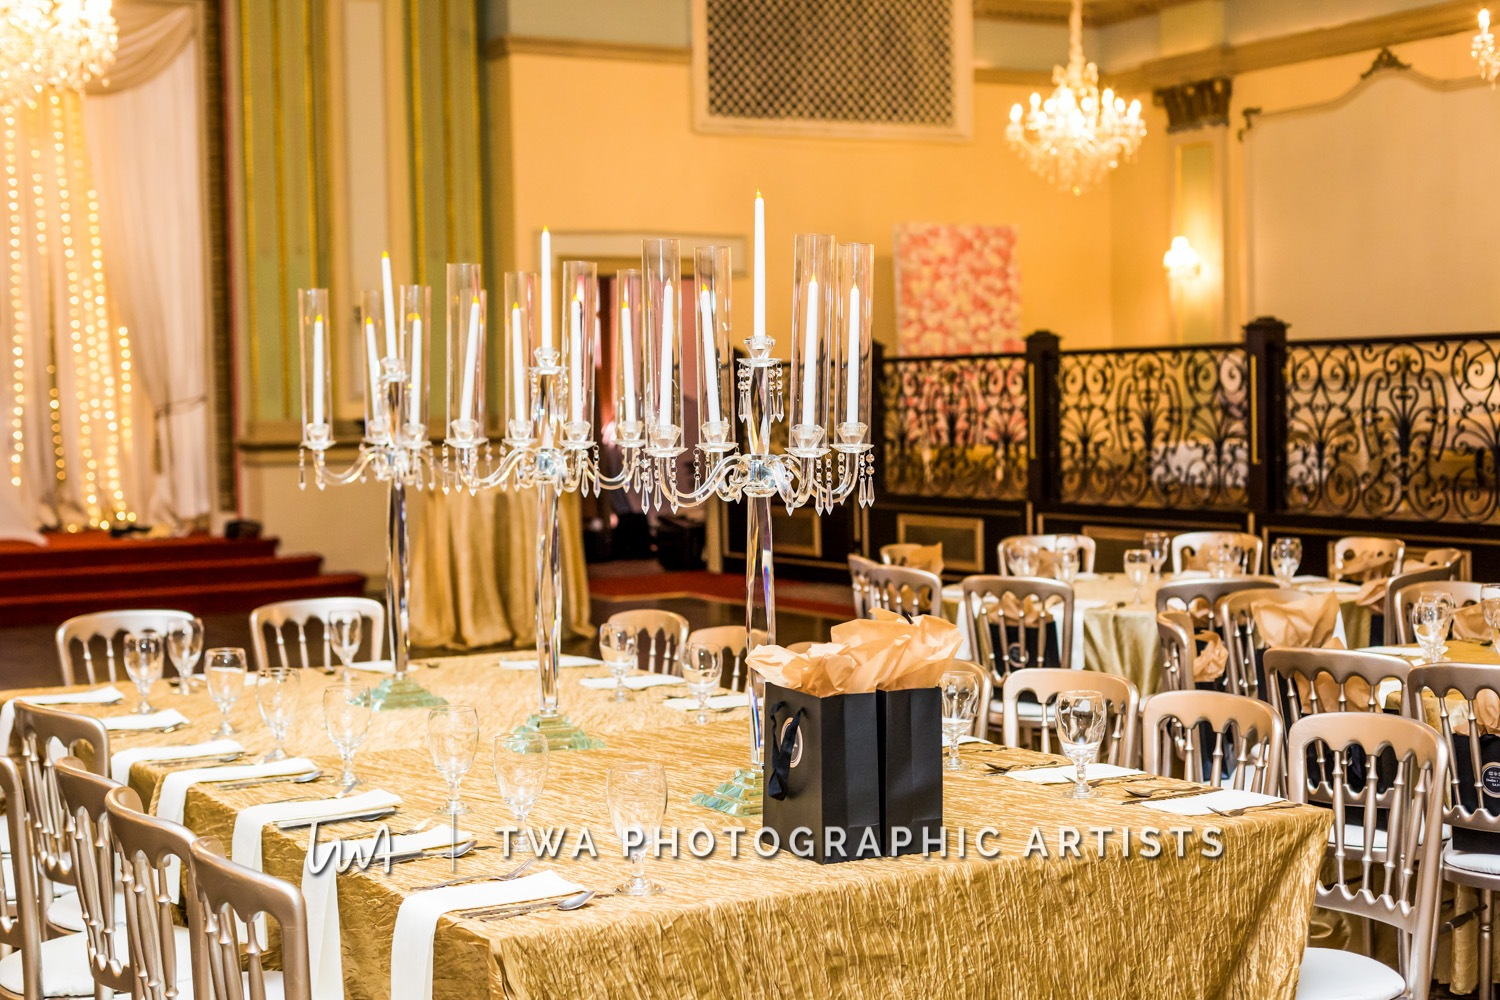 Chicago-Wedding-Photographer-TWA-Photographic-Artists-Stan-Mansion_Ityavyar_Oakley_MJ-0211-1